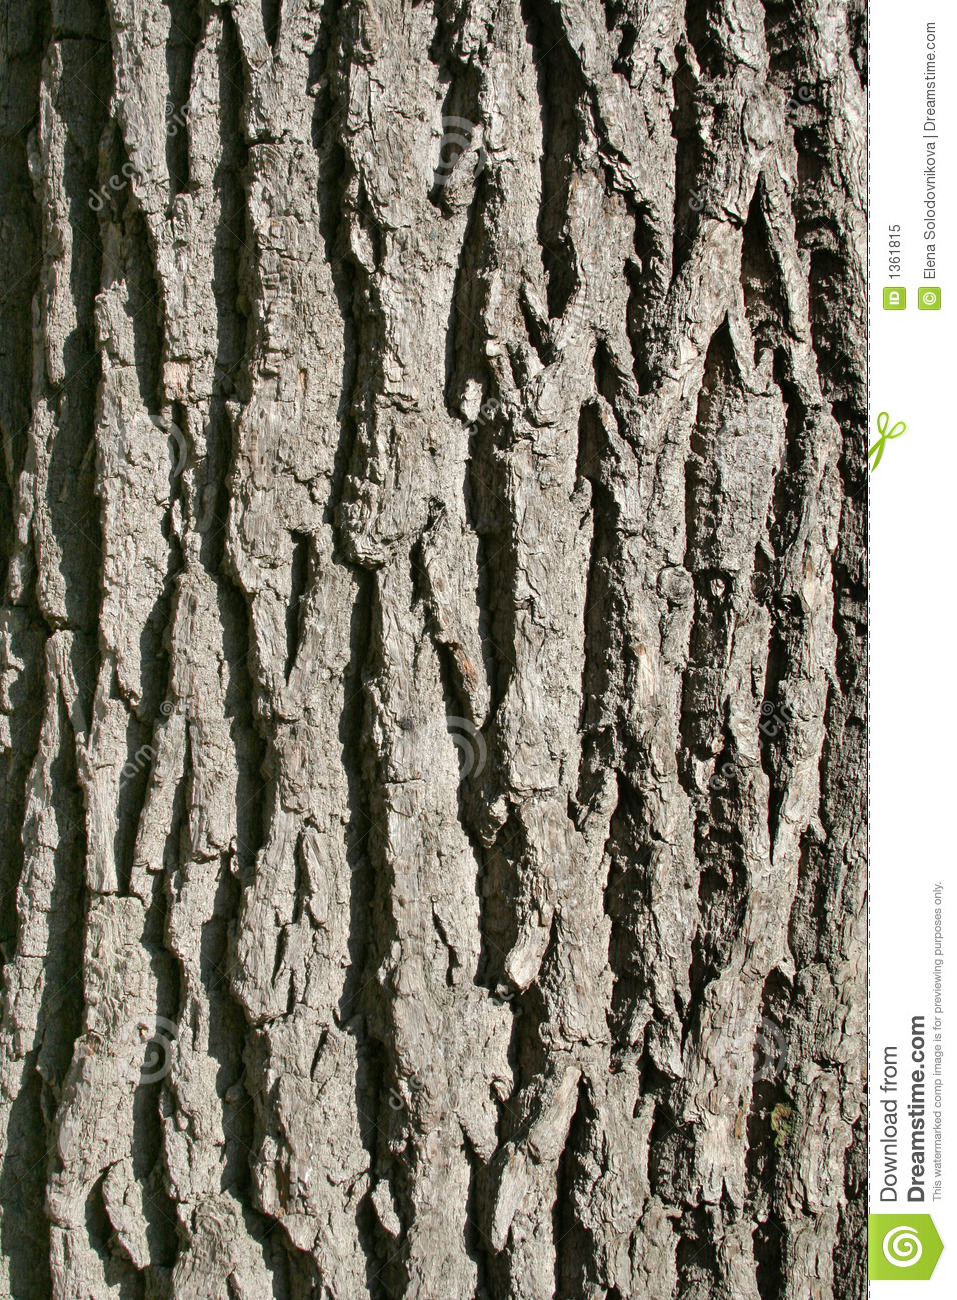 Oak Bark S Texture Vertically Stock Image Image 1361815